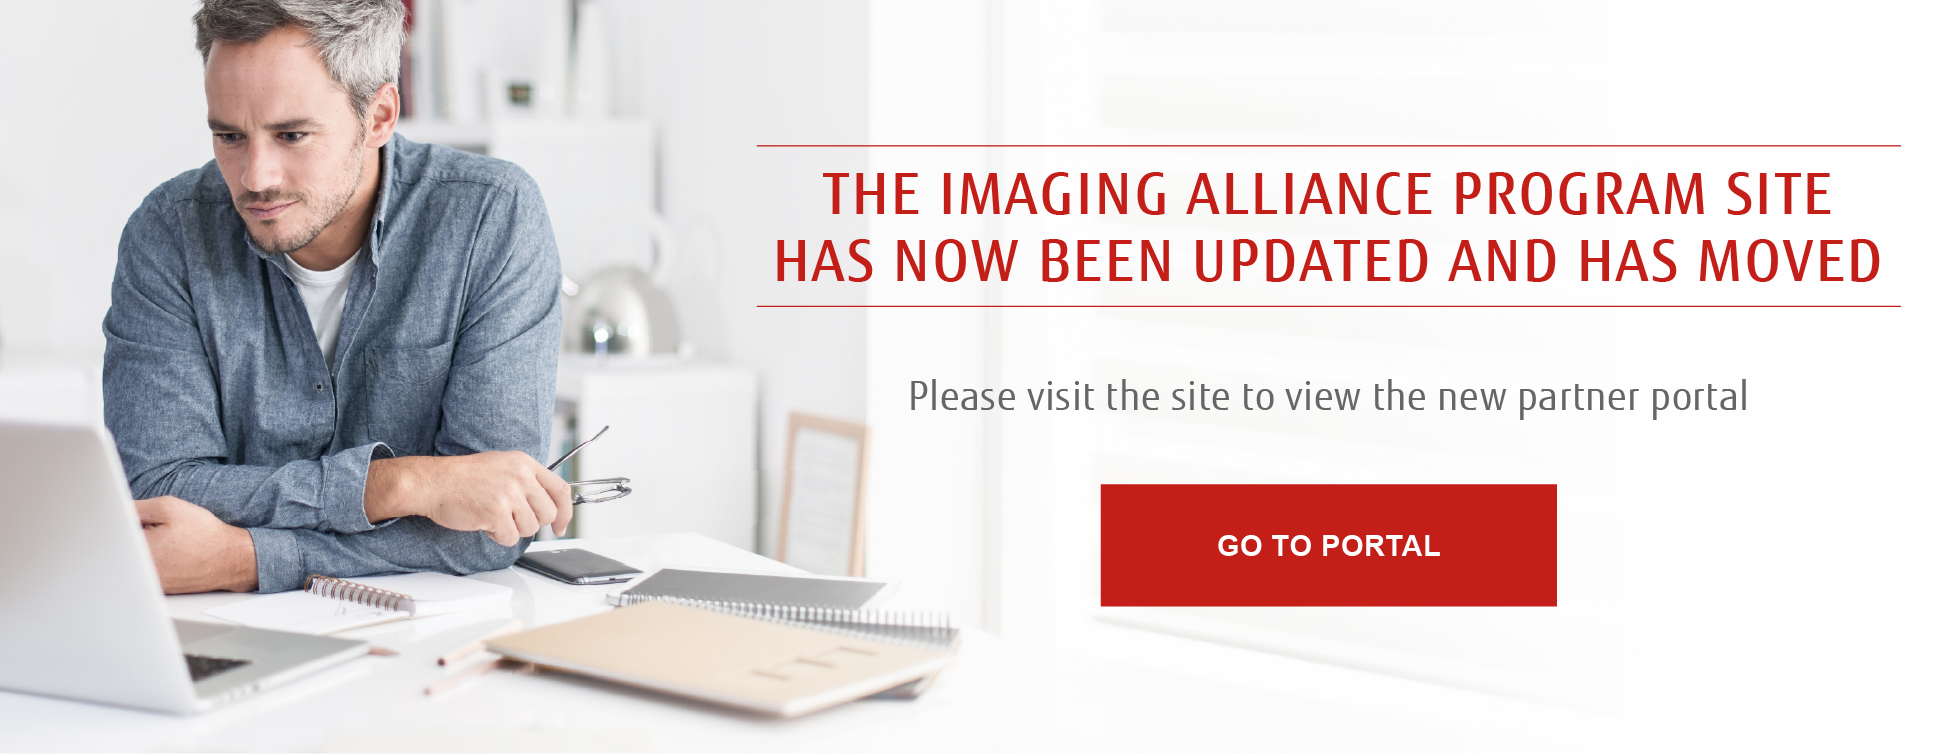 Imaging Alliance Portal is undergoing maintenance